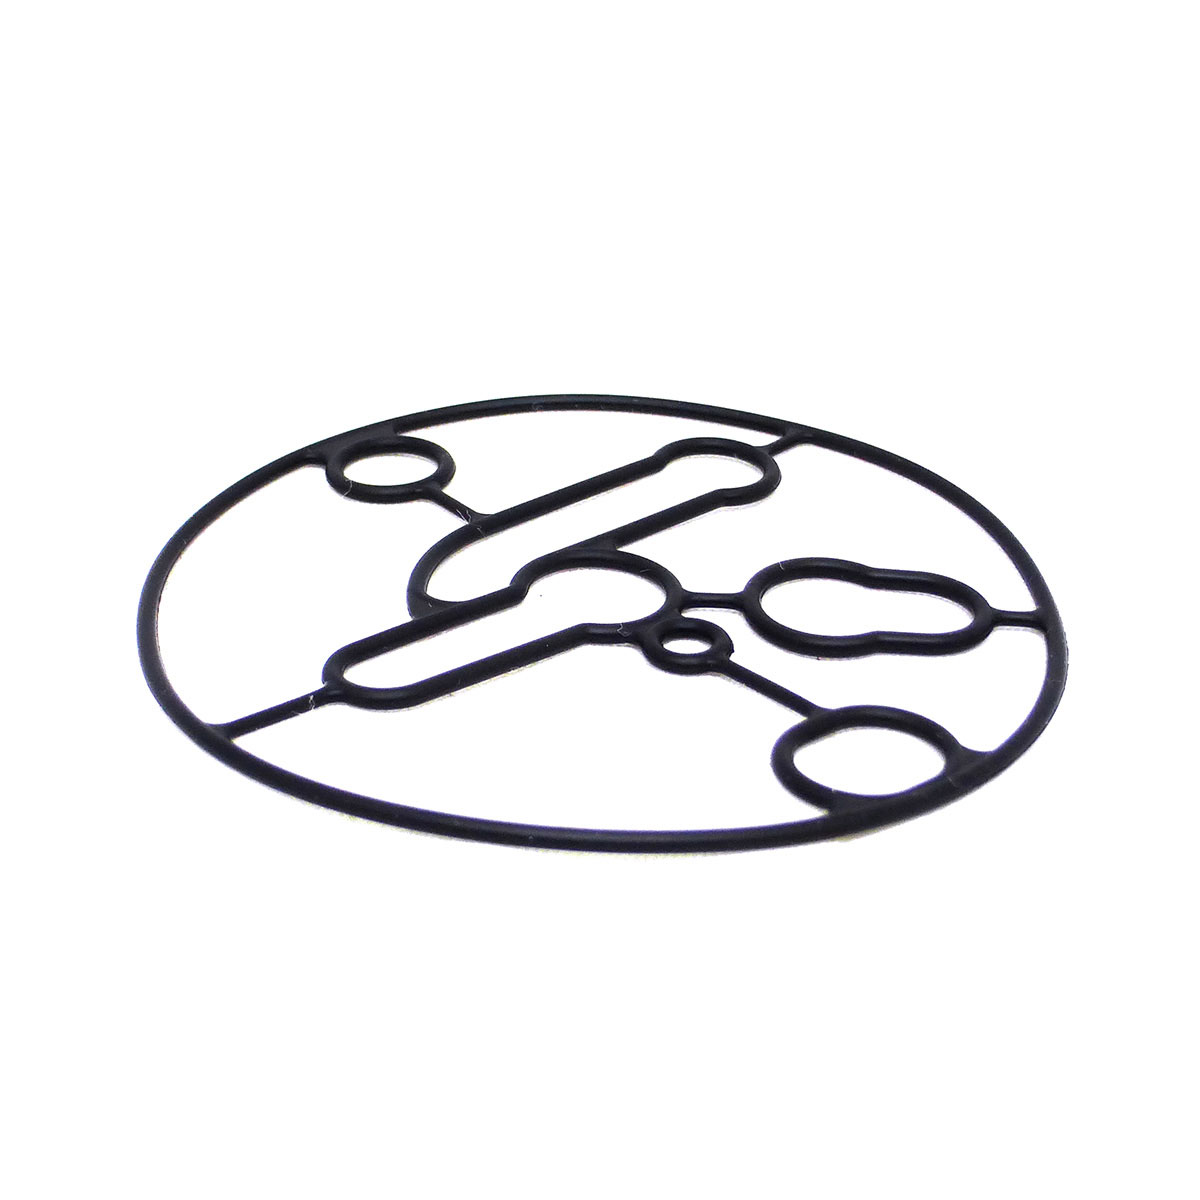 float bowl gasket bs-695426